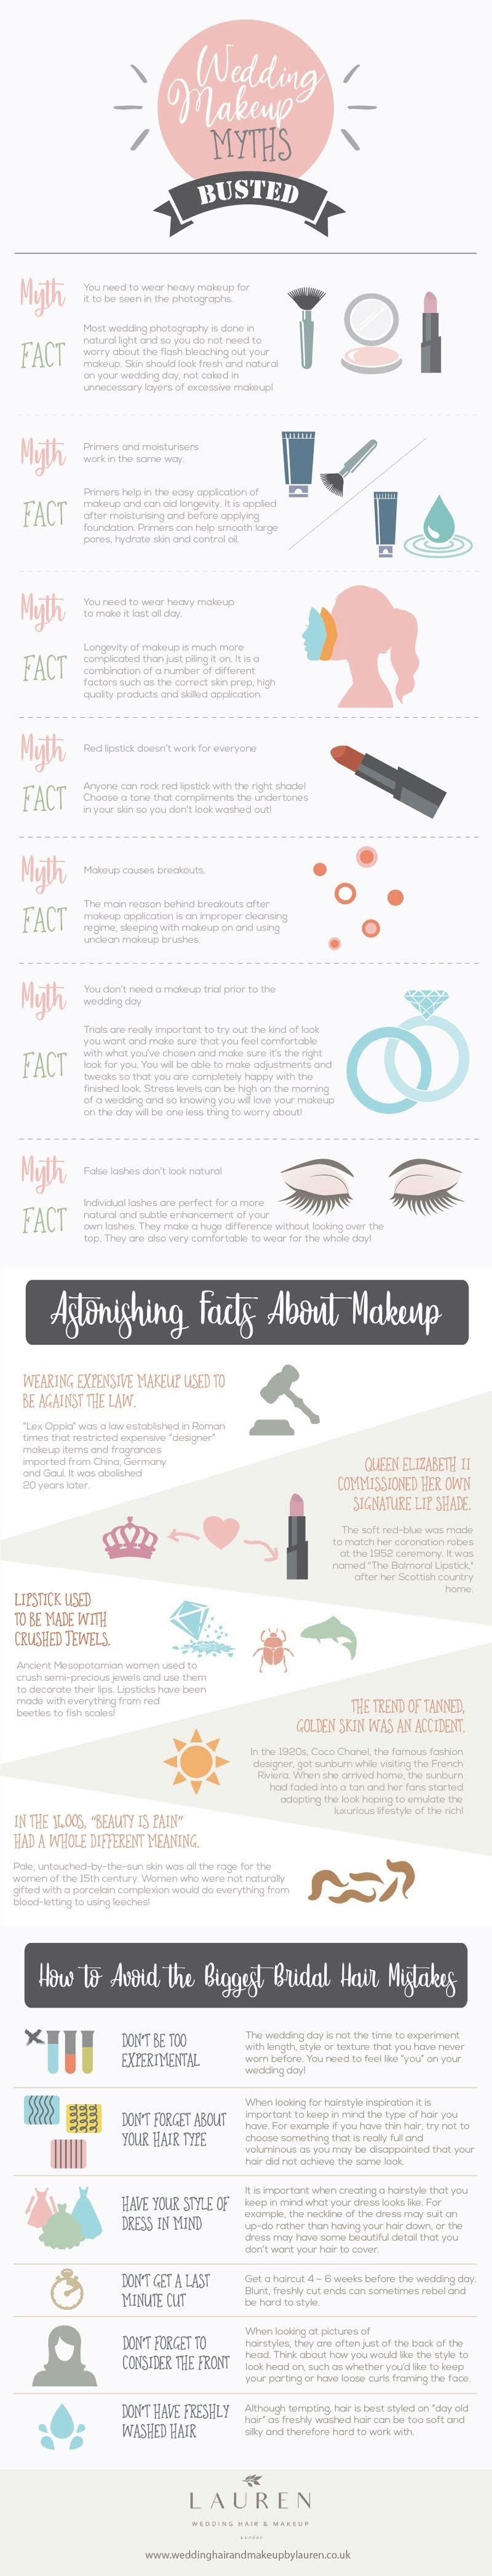 Wedding Makeup Myths Busted #infographic